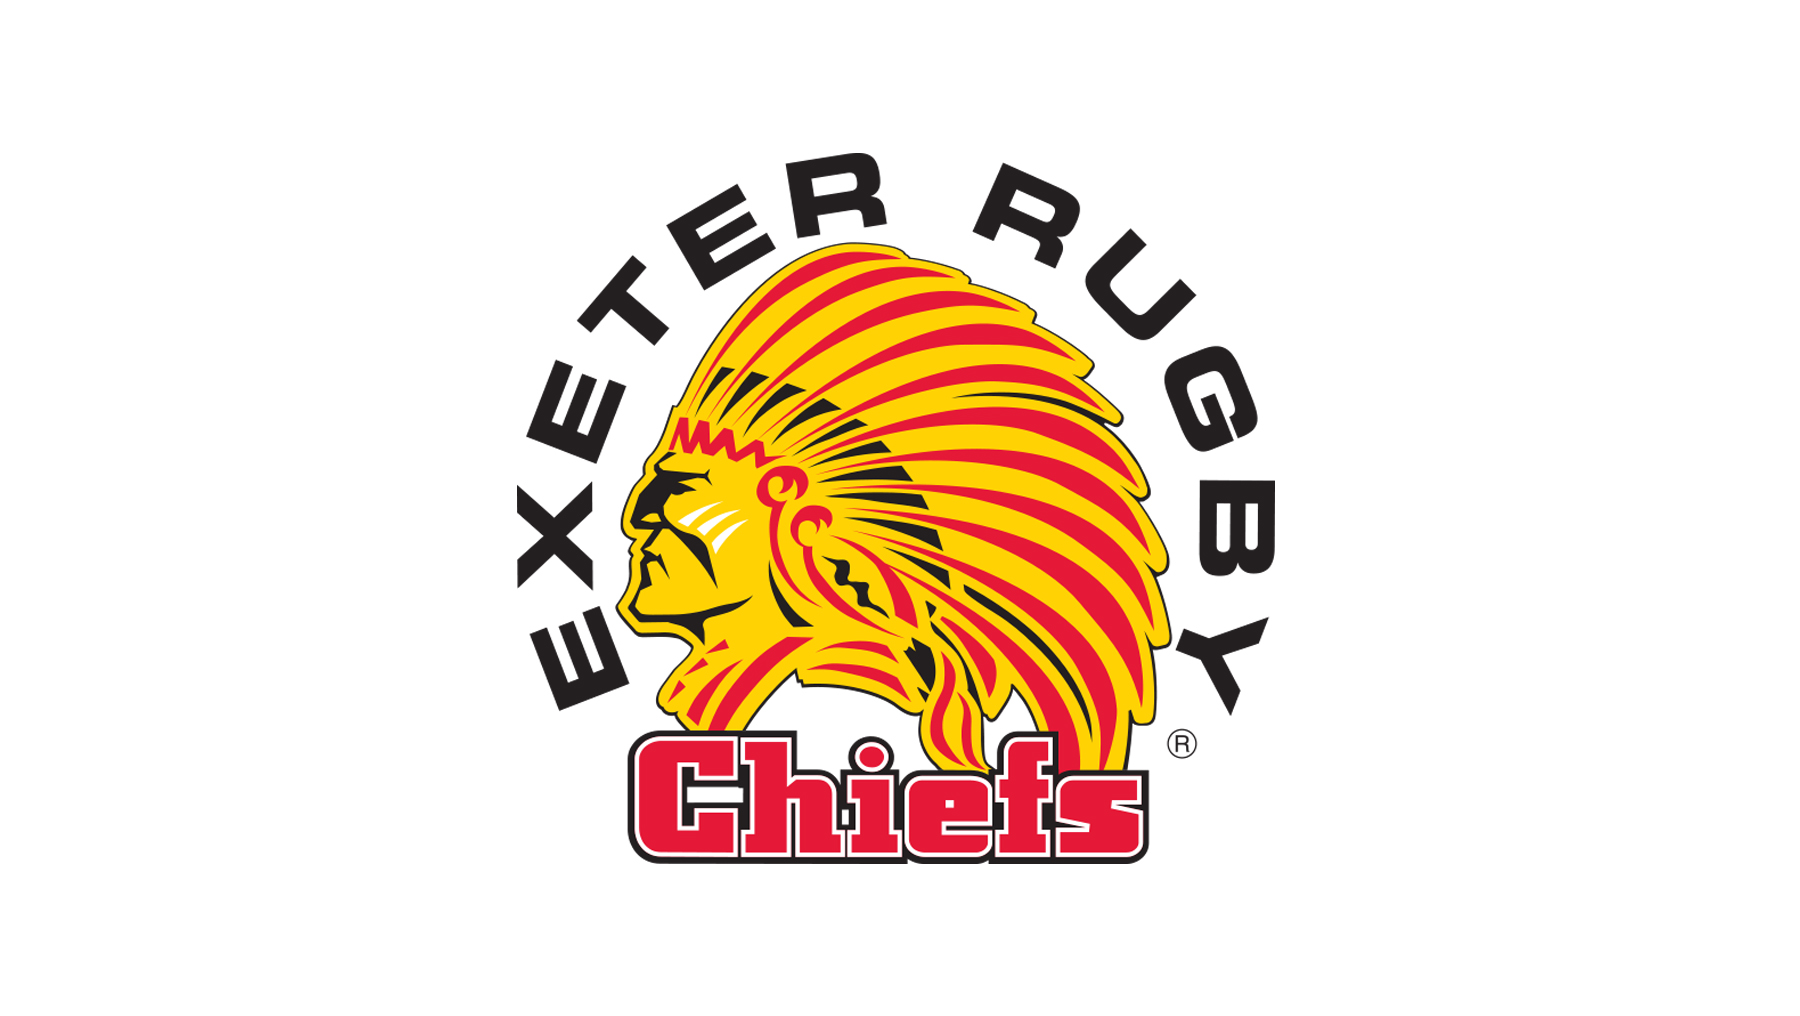 exeter-chiefs.jpg